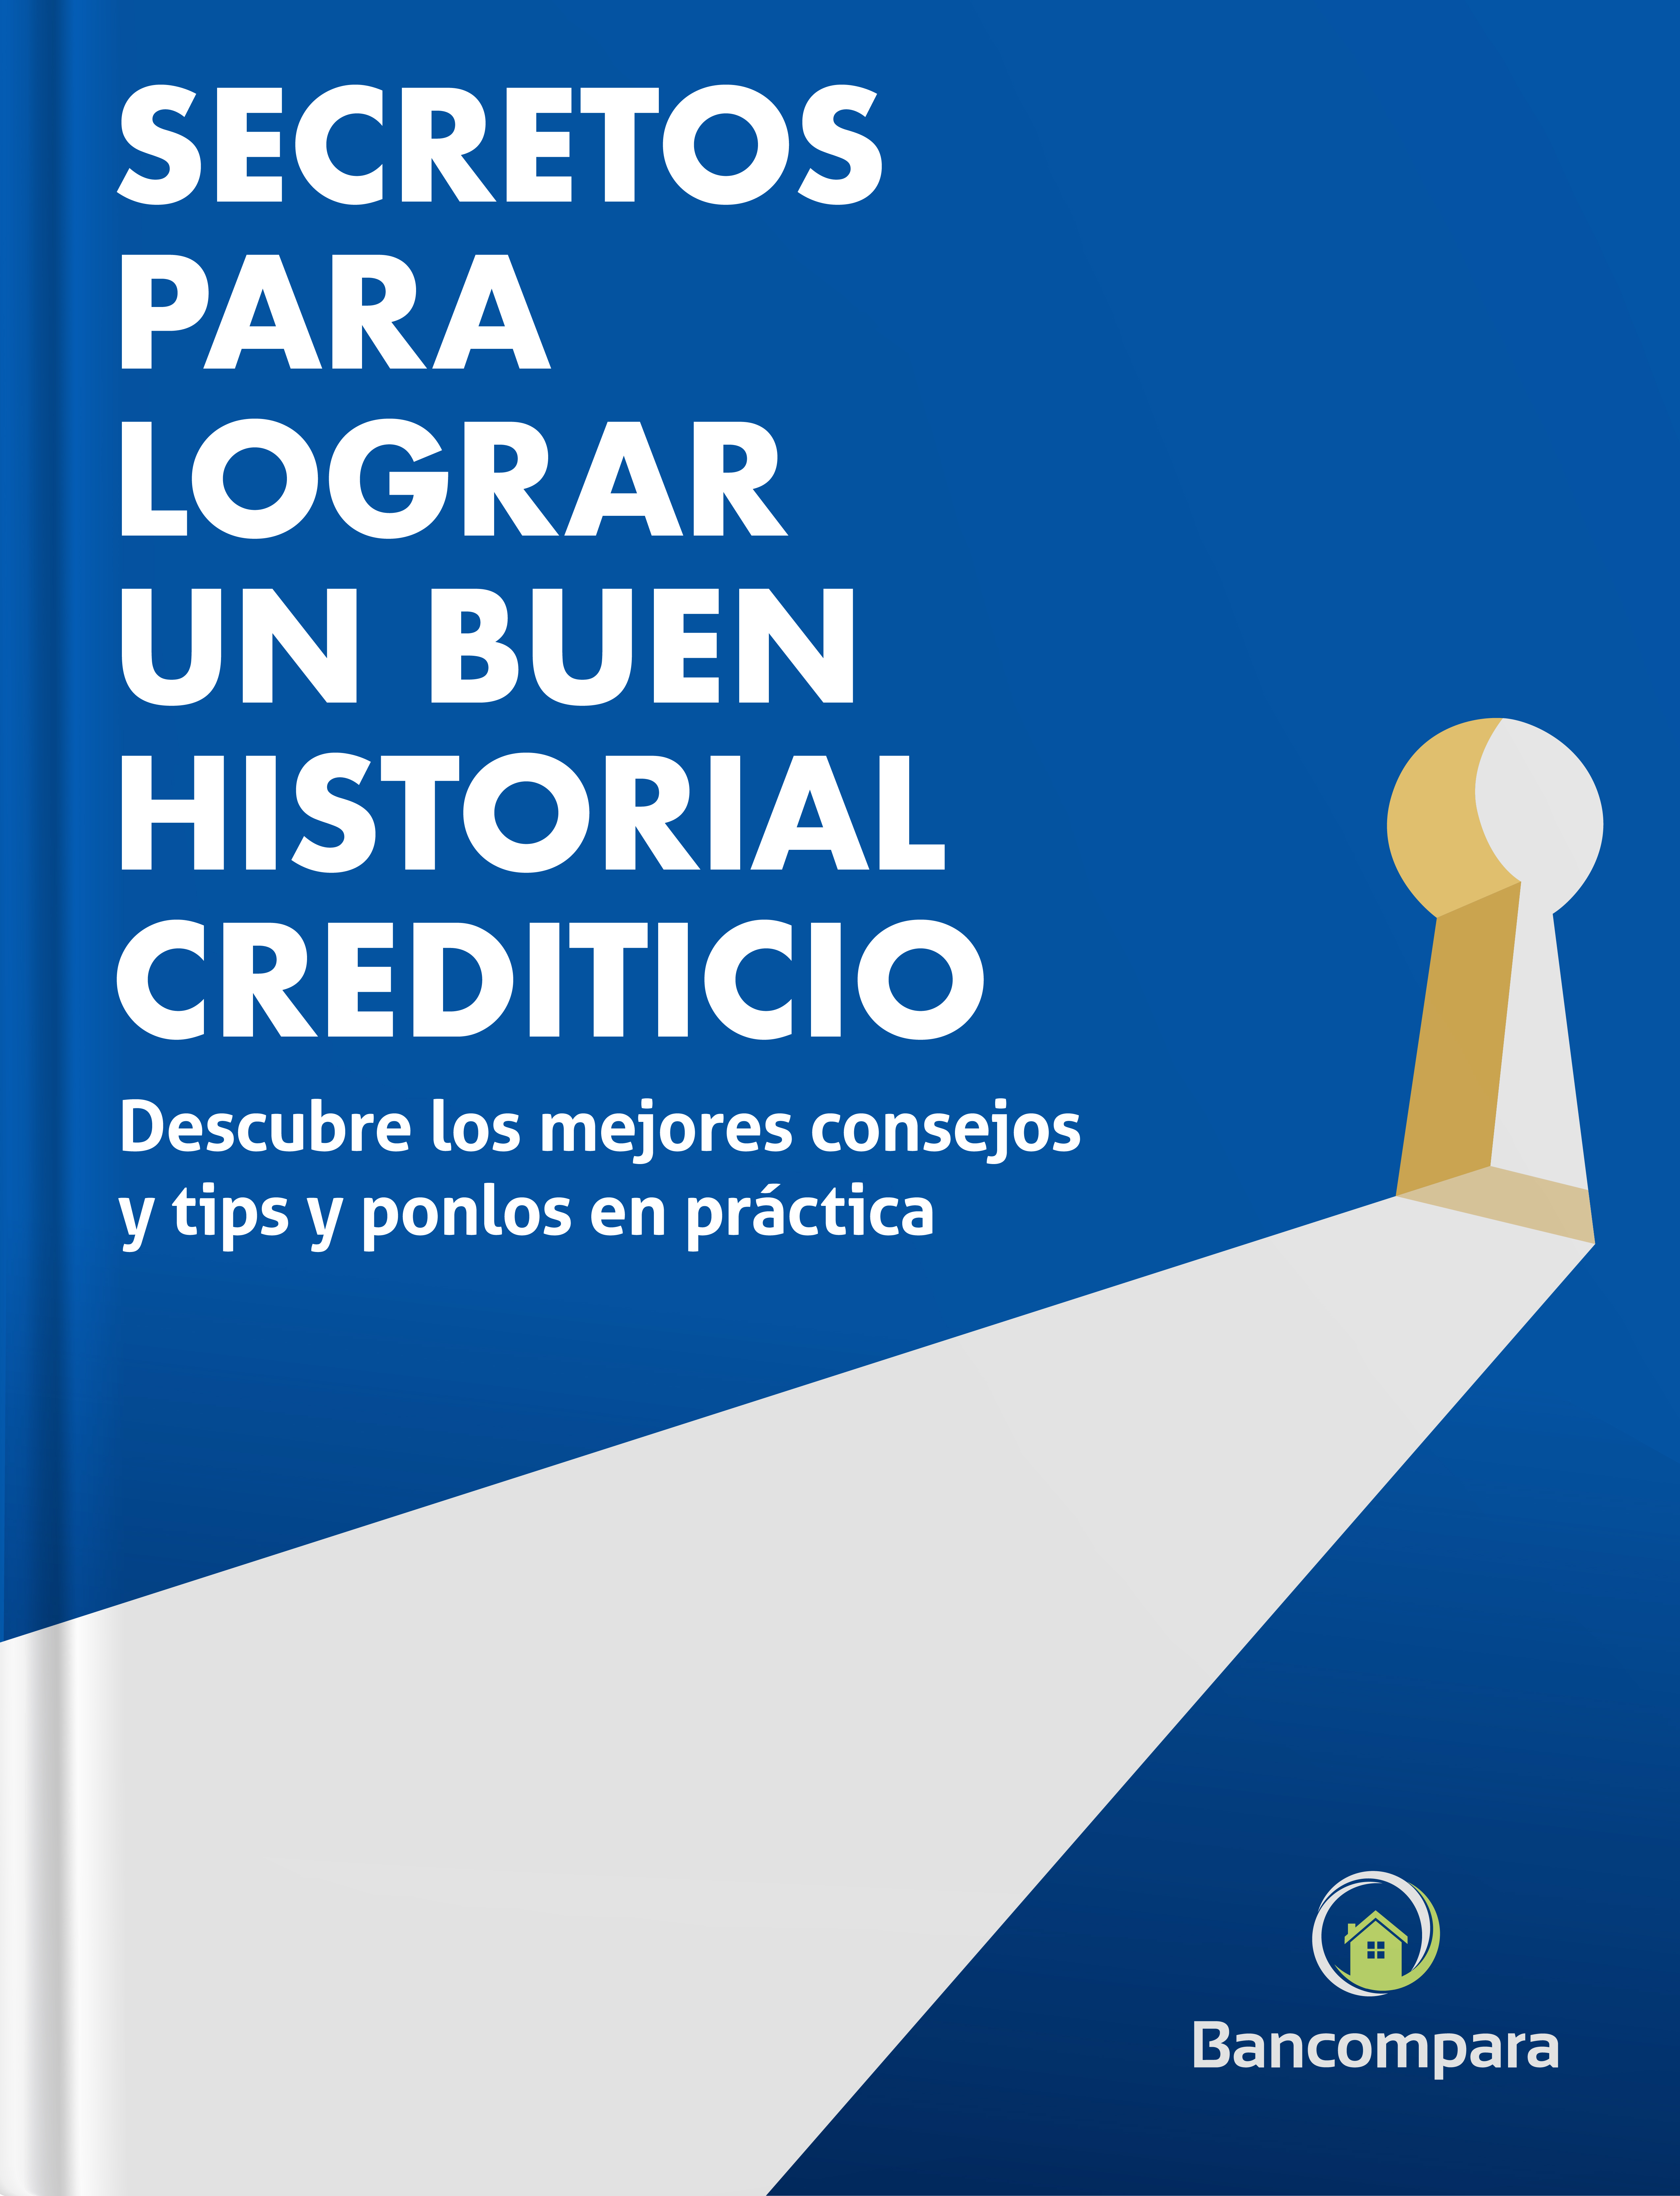 eBook-Secretos-enero 2020